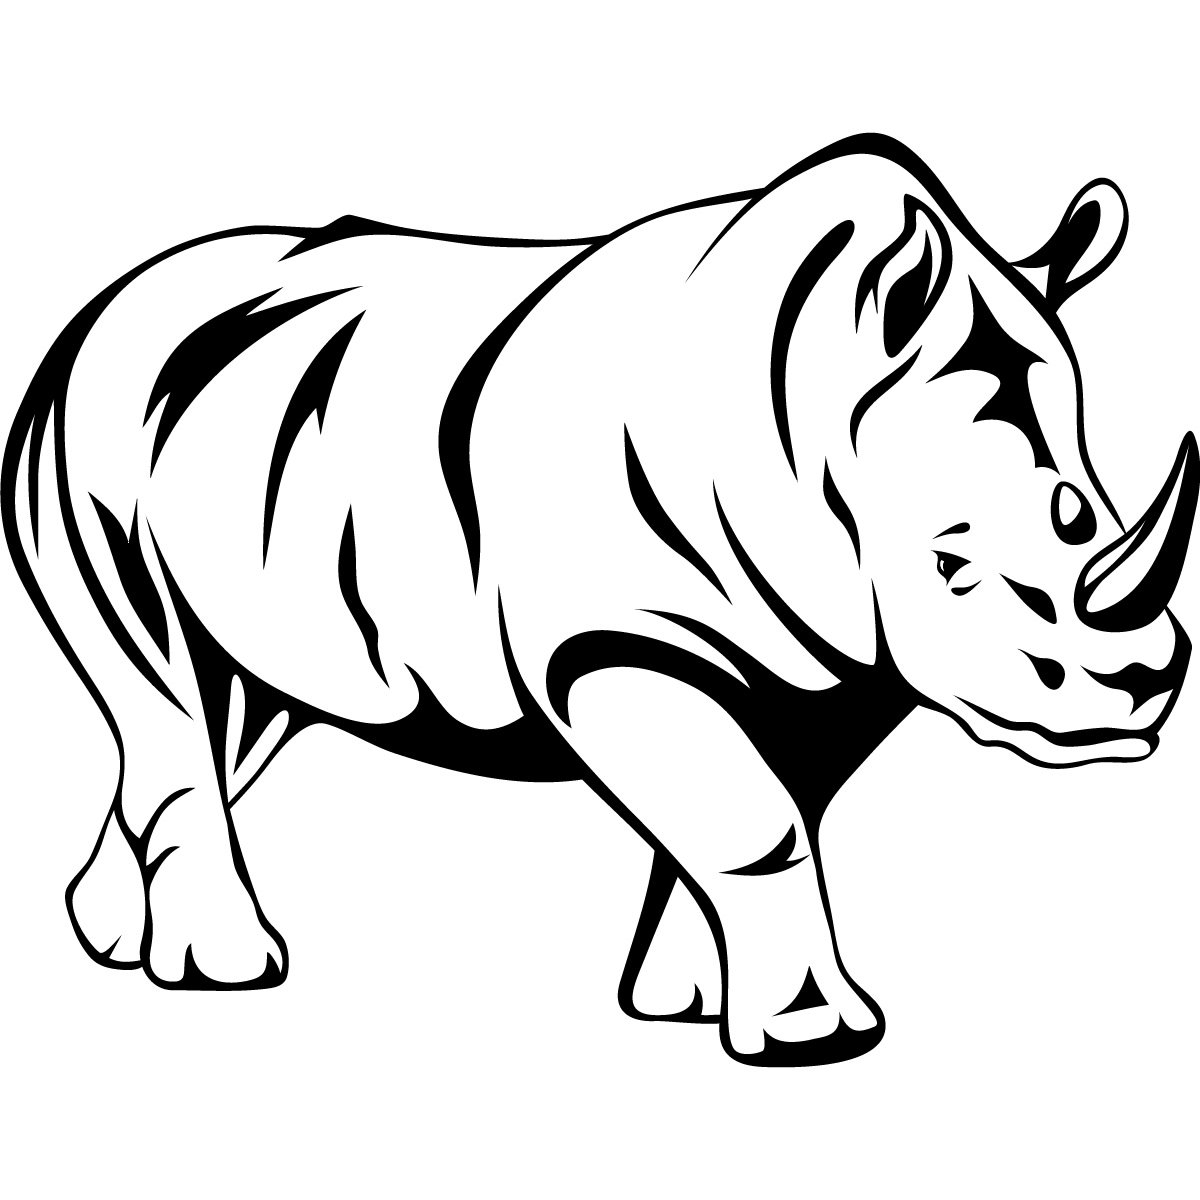 1200x1200 outline drawing of animals line drawings of animals free vector - Animal Outlines